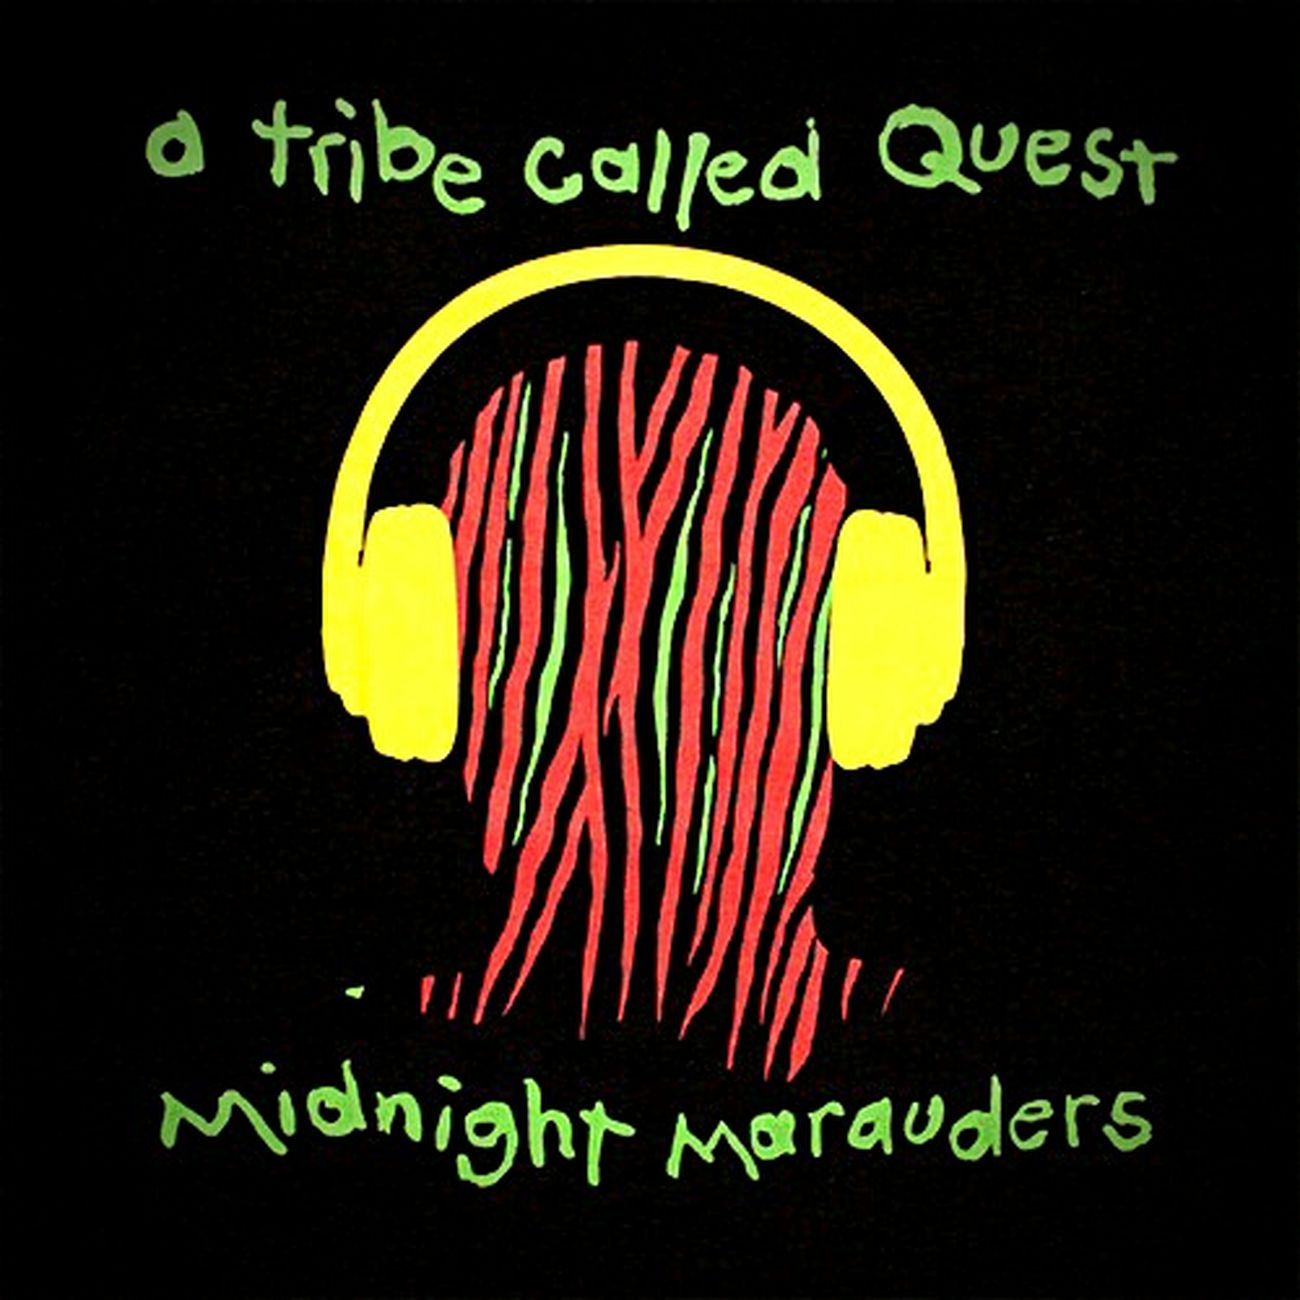 A Tribe Called Quest Classic for Friday Night - Q-tip, Phife Dawg, Ali Shaheed Muhammad